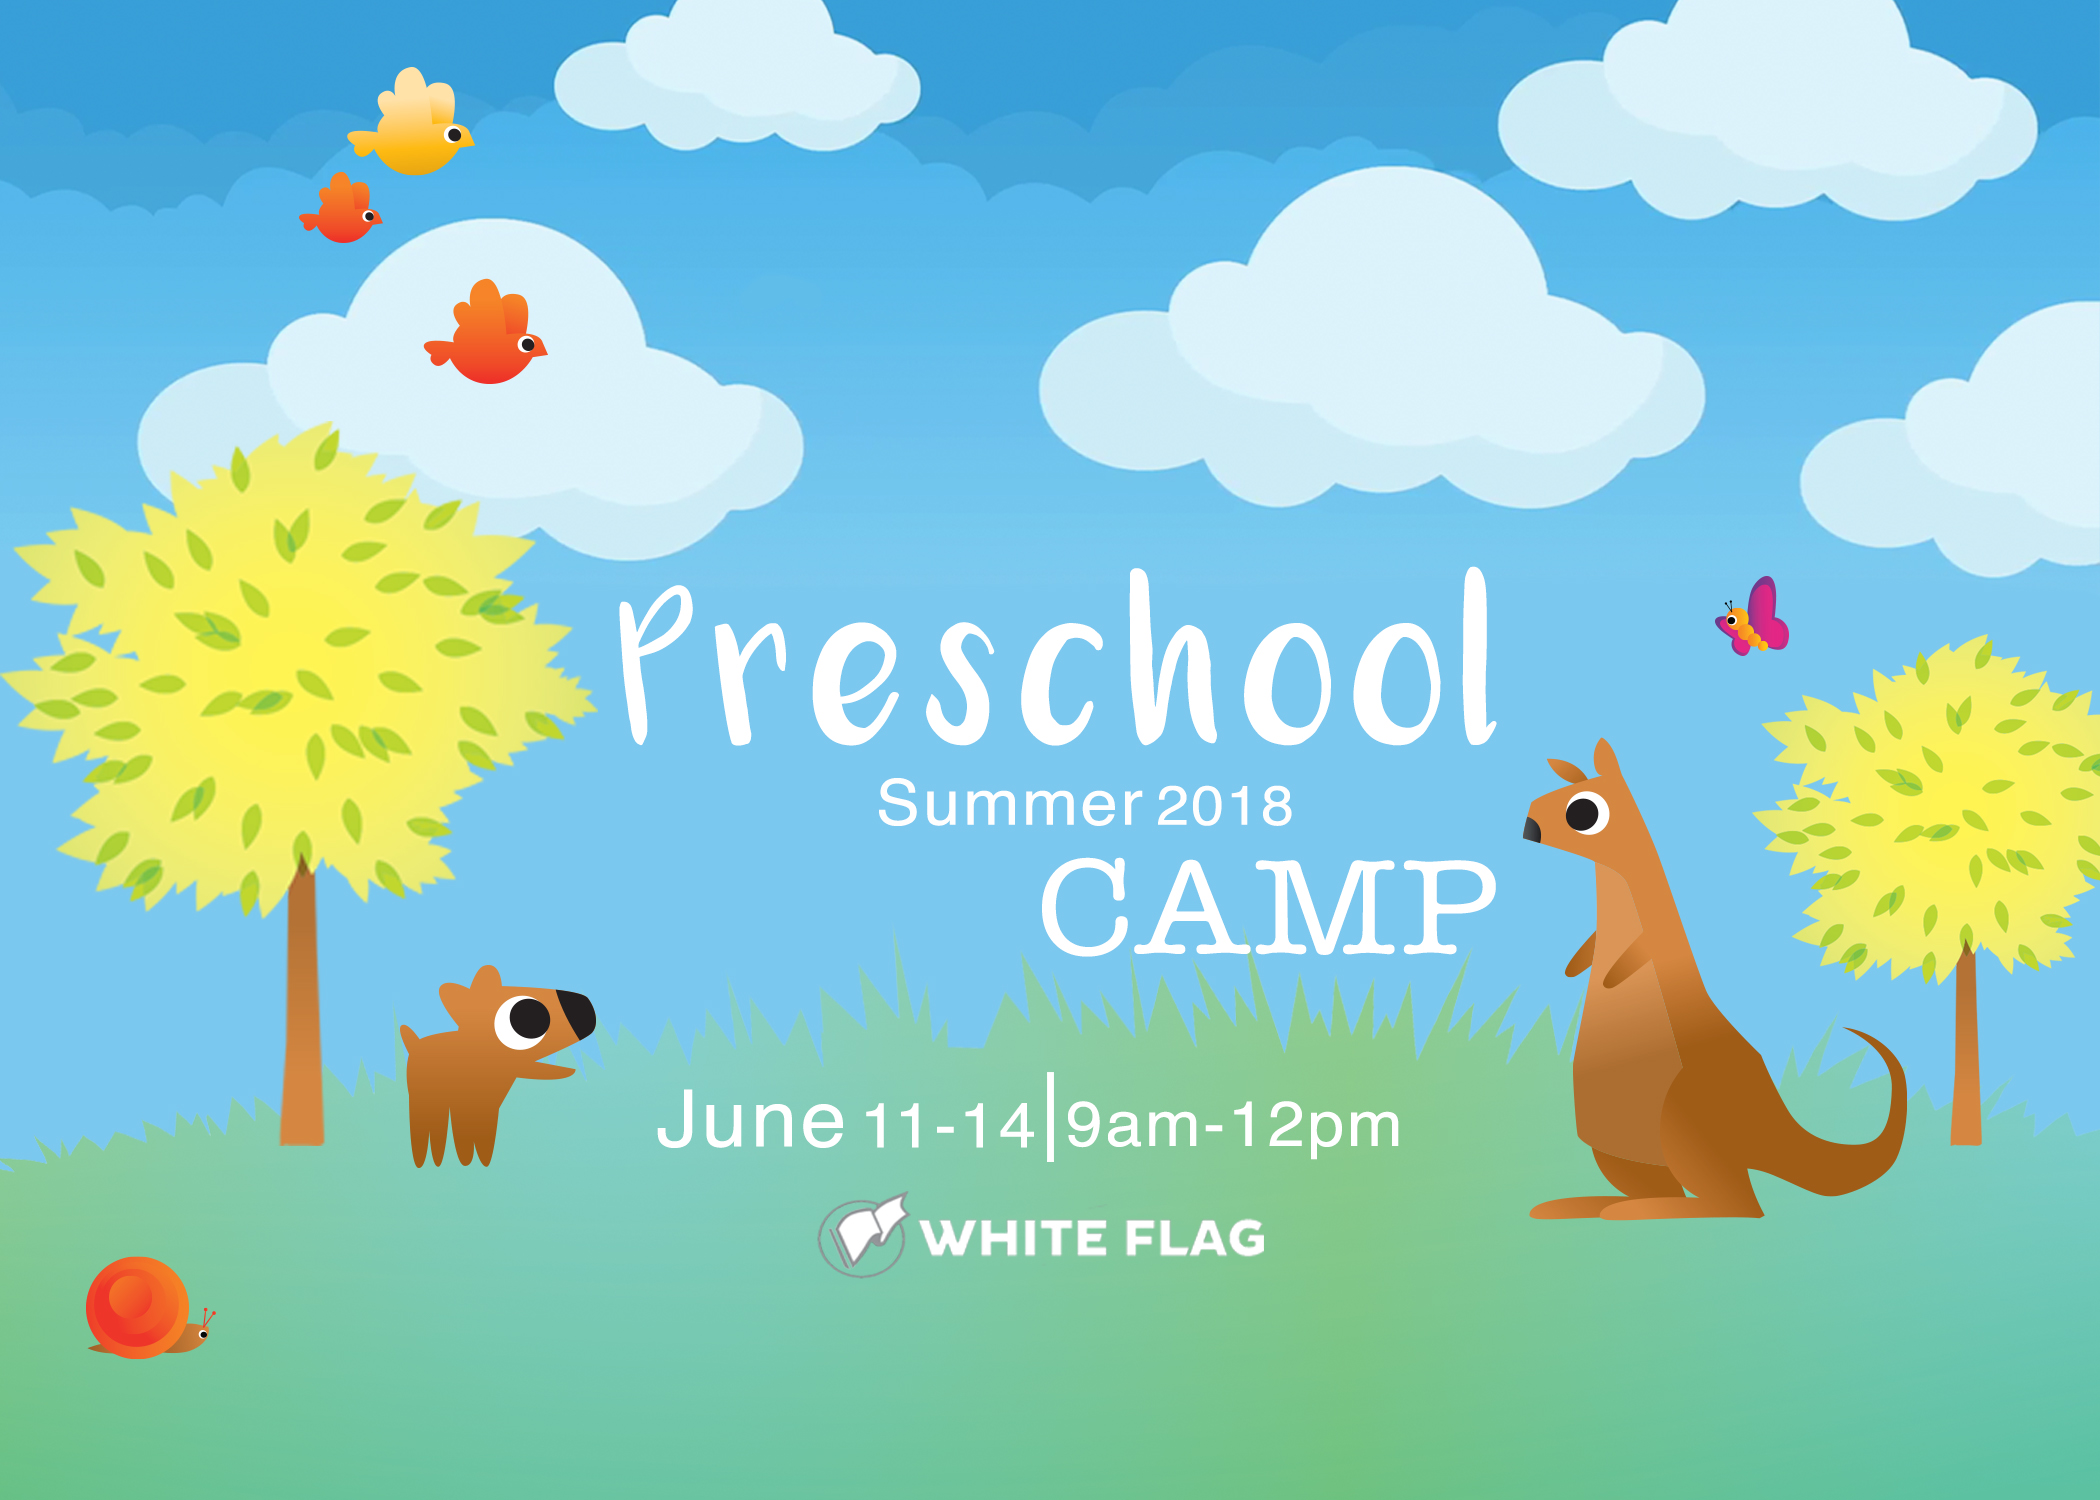 Preschool camp graphic 3